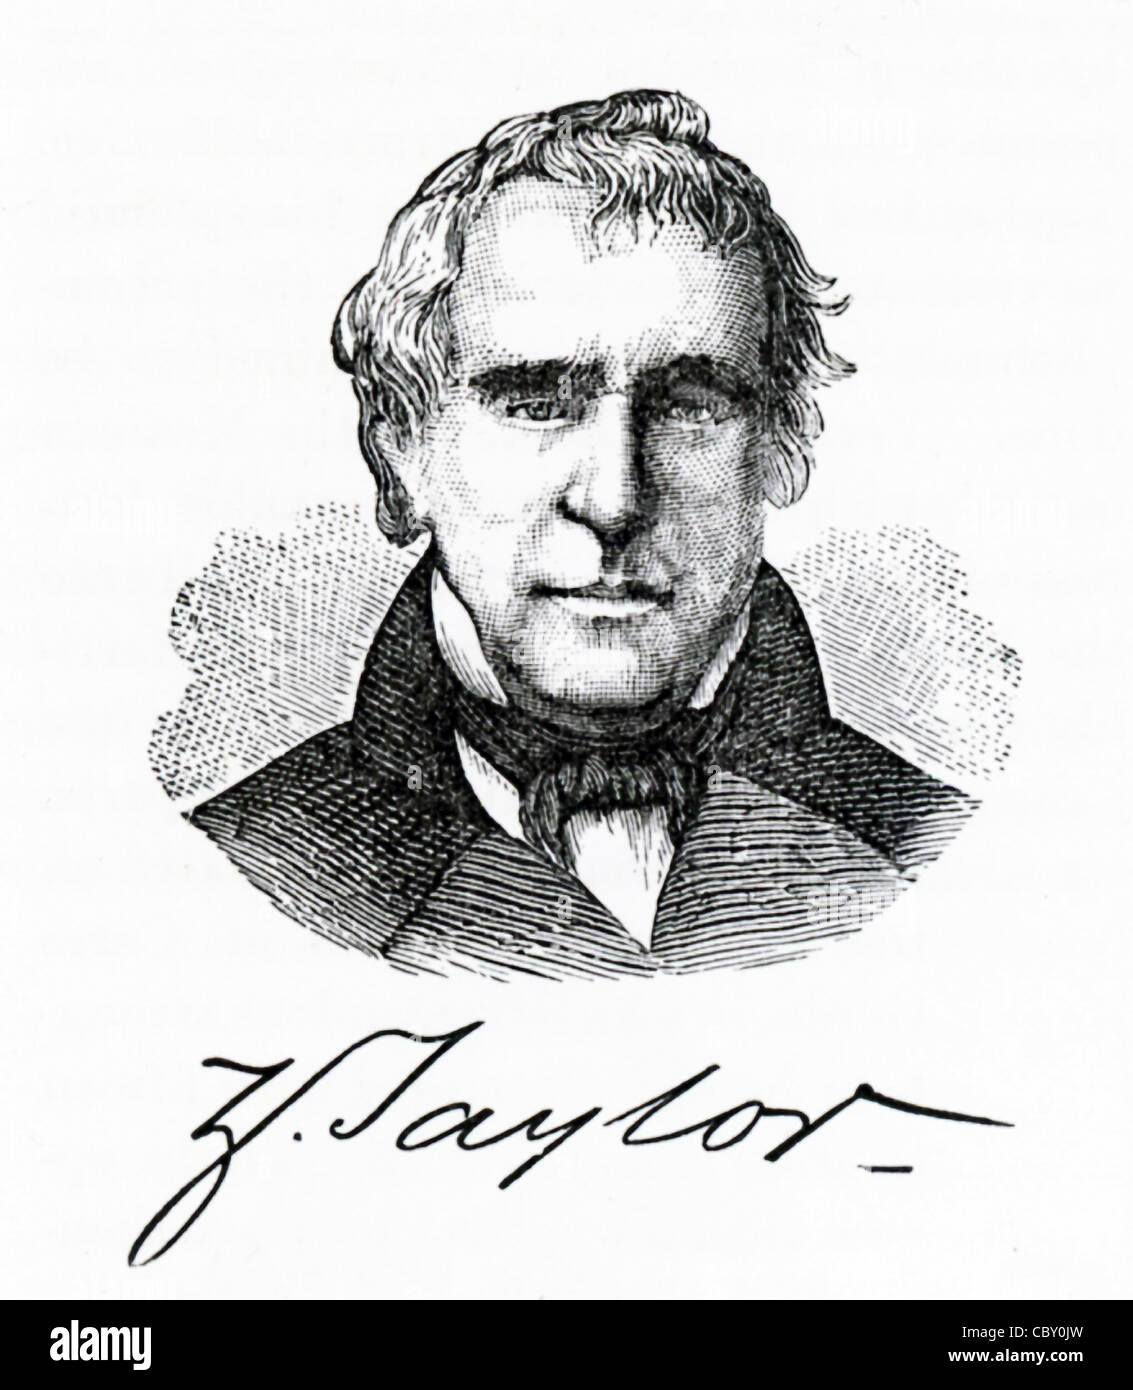 Zachary Taylor (1784-1850) was the 12th President of the United States and had the nickname of 'Old Rough and - Stock Image